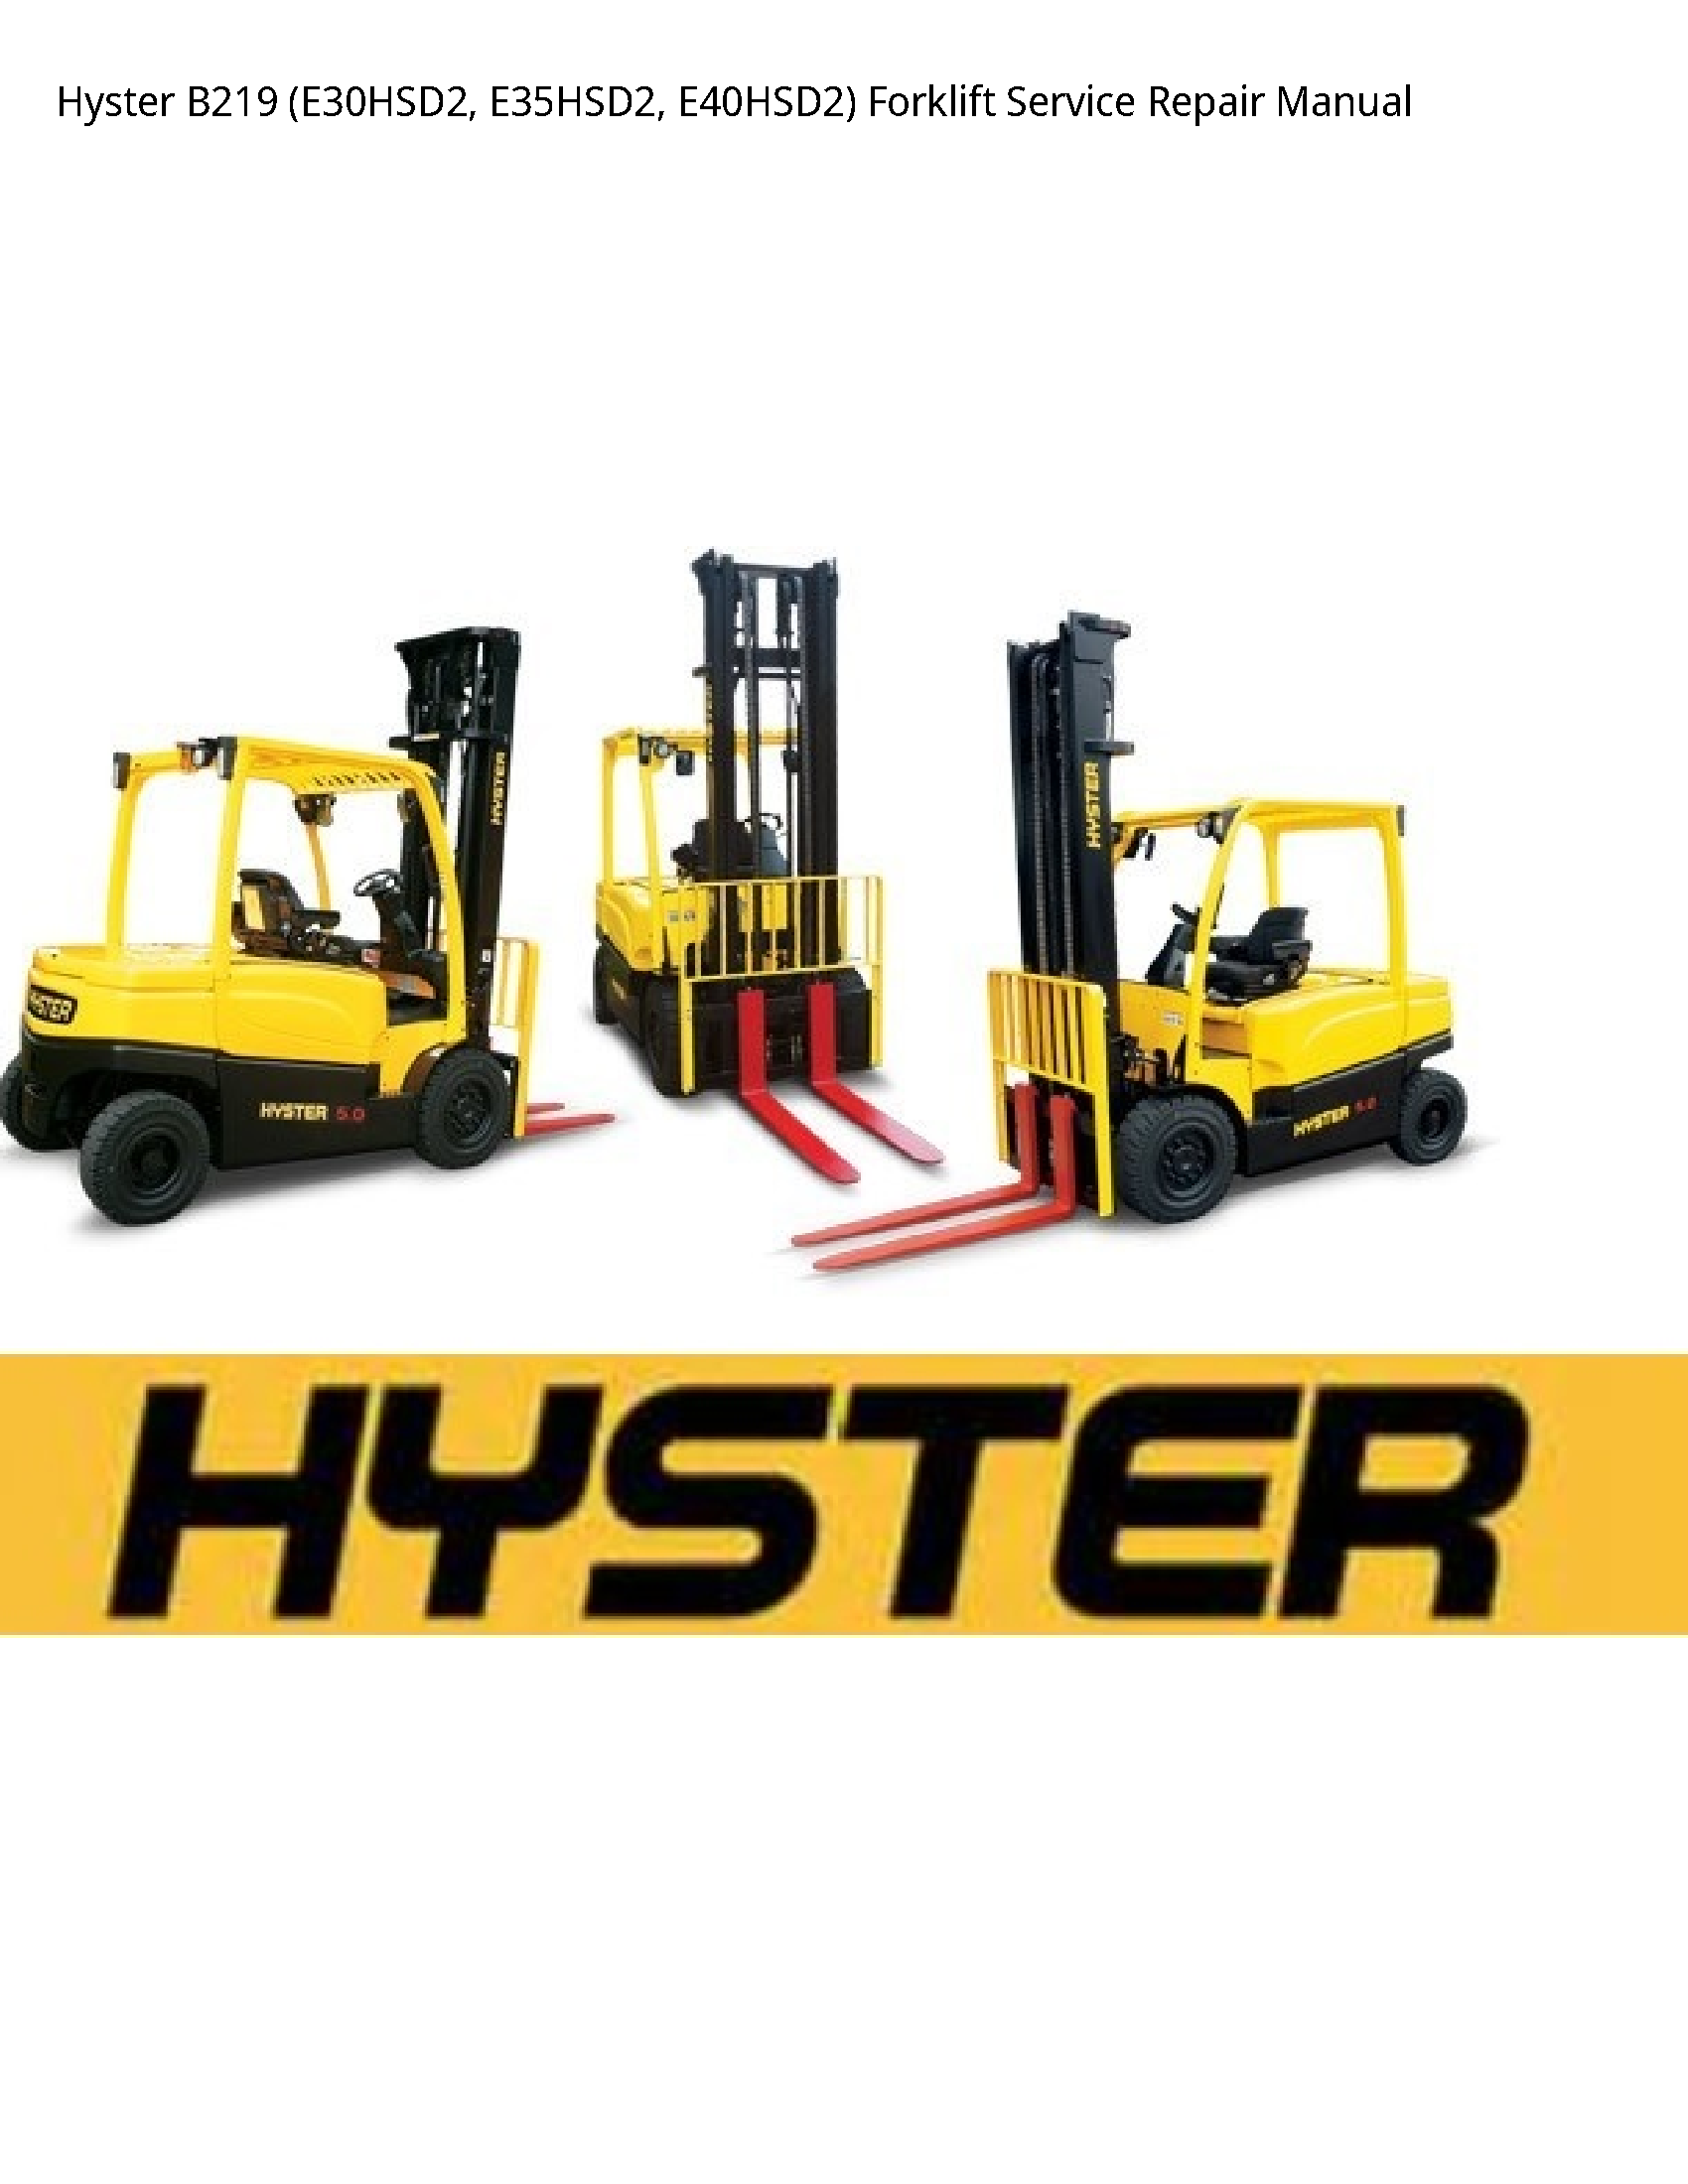 Hyster B219 Forklift manual